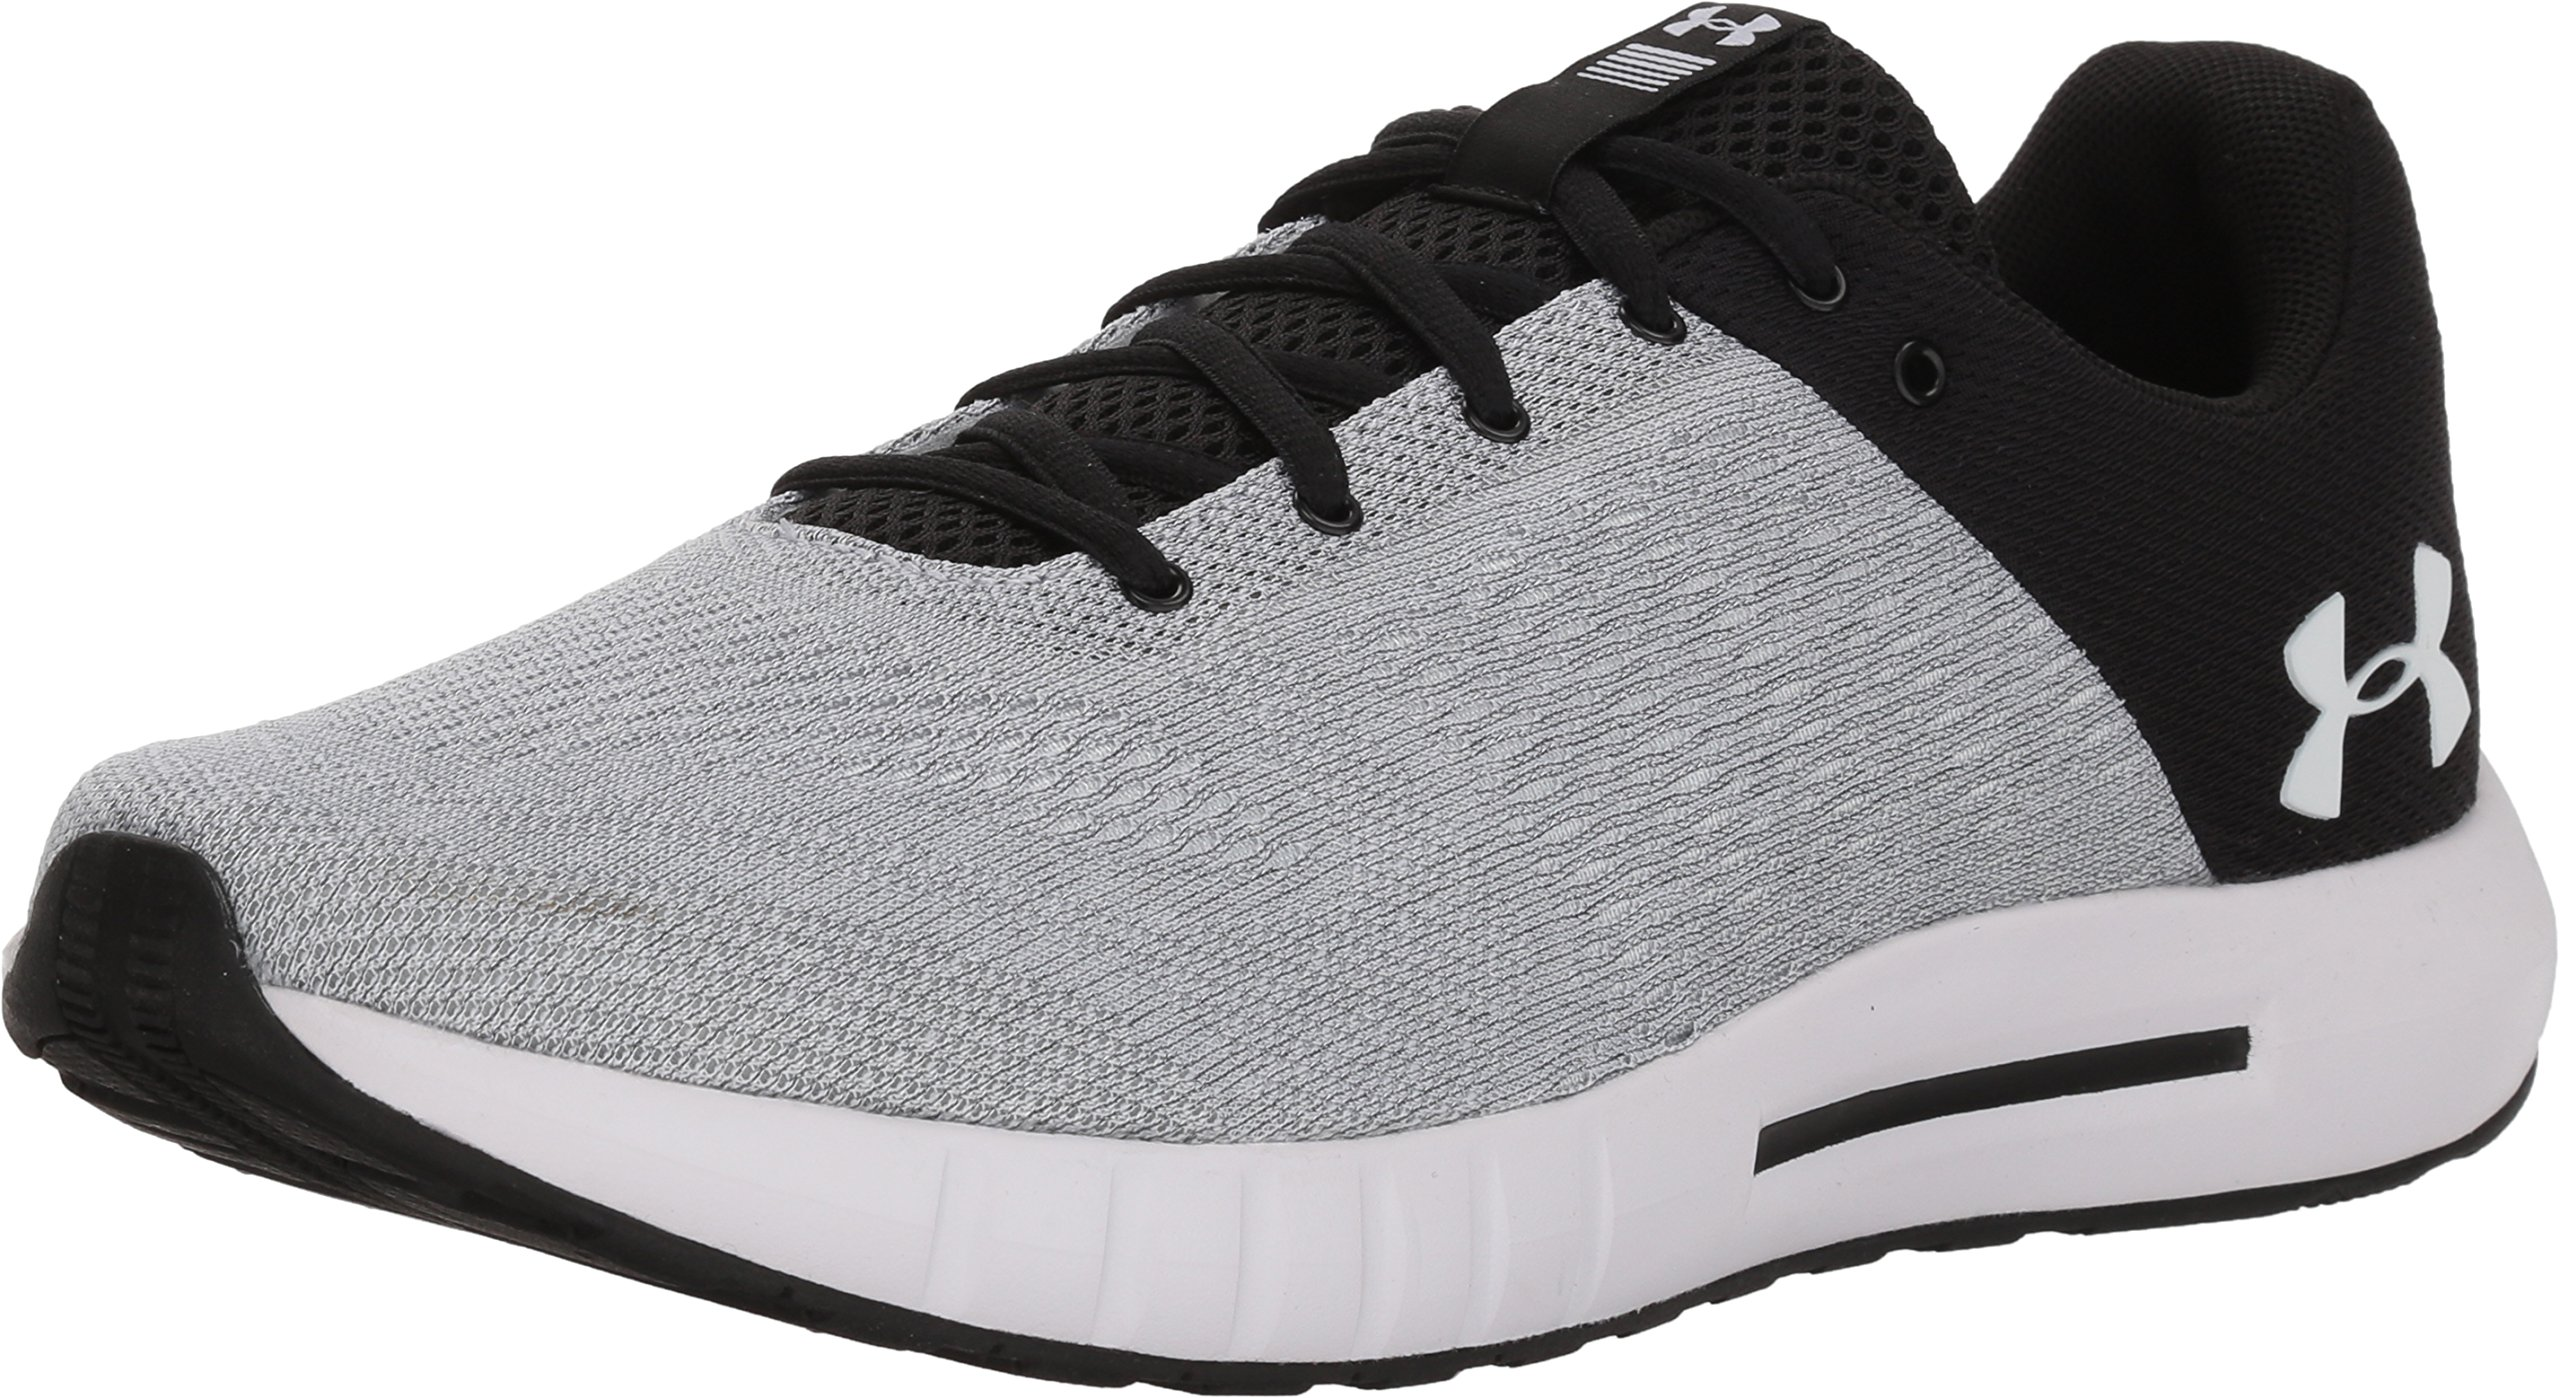 Under Armour 3000011 002 Micro G Pursuit Black White Grey Men/'s Running Shoes